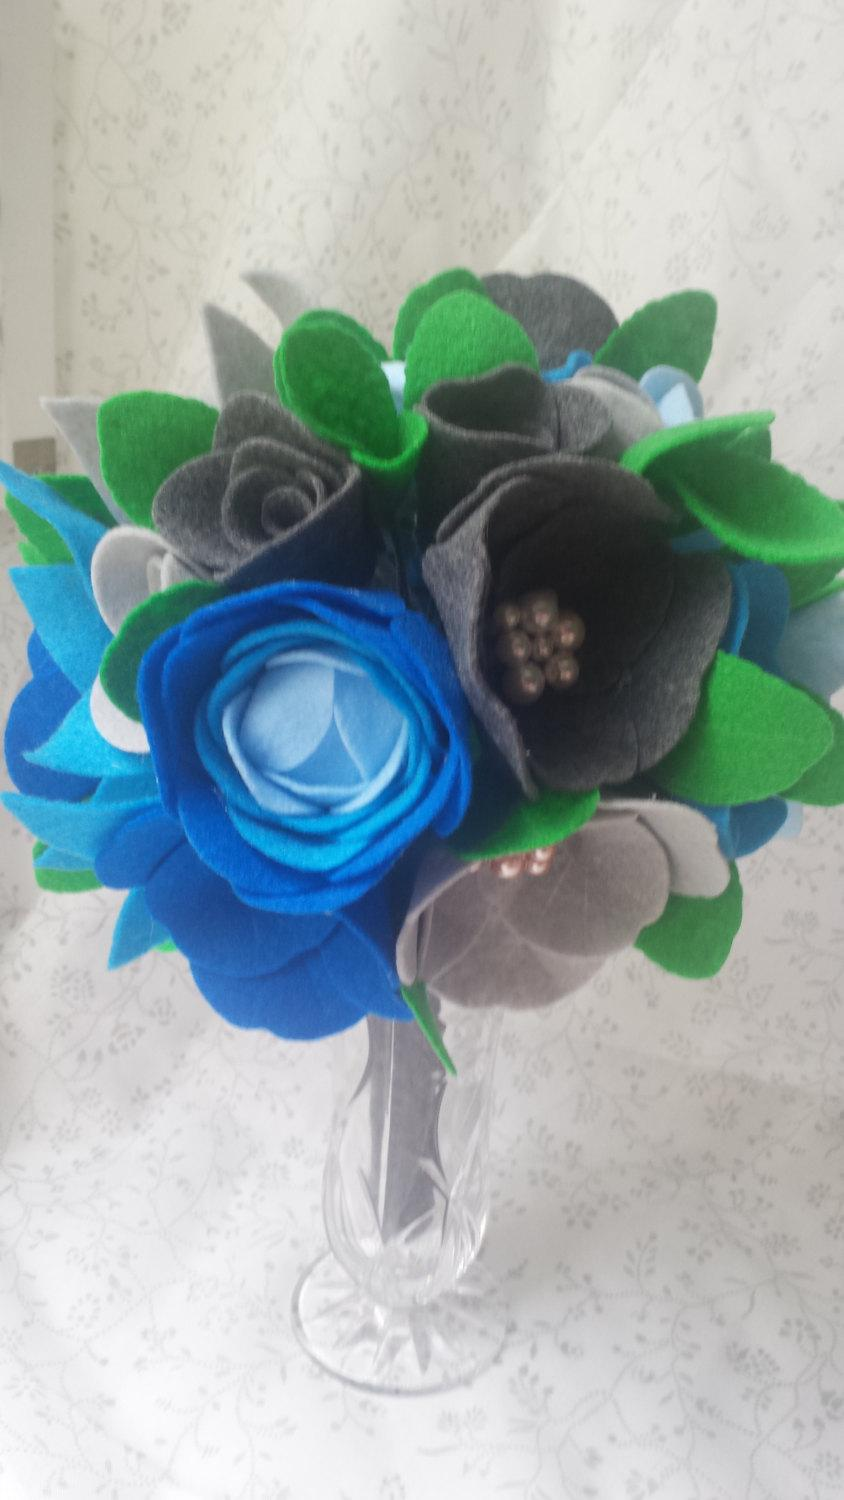 Hochzeit - Blue Gray Felt Flower Bouqet with Pearl Accents-Wedding- Gift- DIY-Rose -Peony